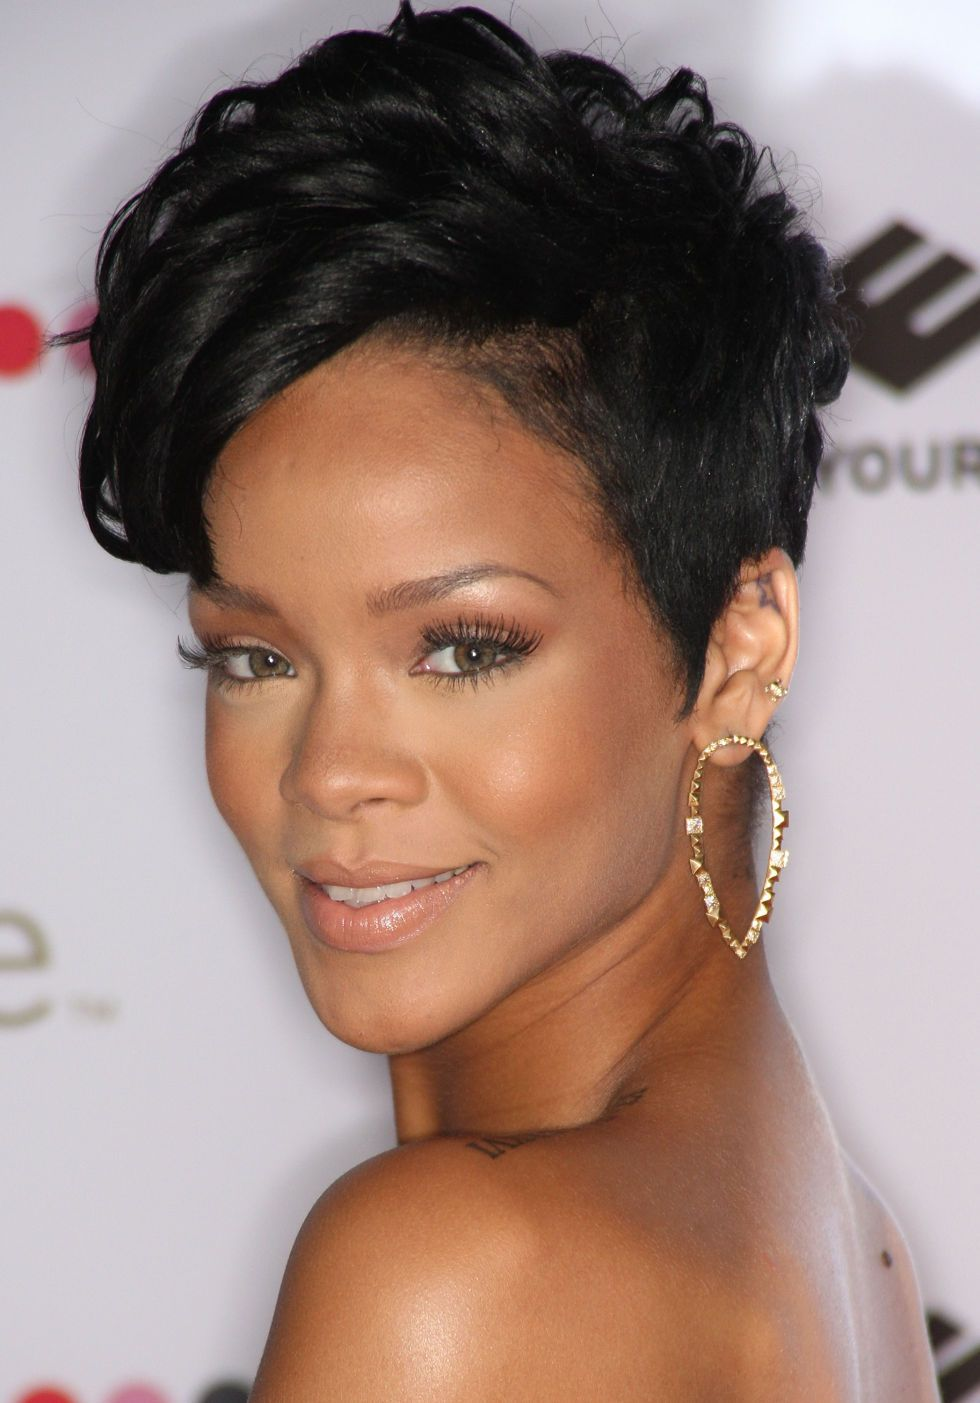 Rihanna Hairstyles Beauteous A Complete Guide To All Of Rihanna's Hairstyles  Hair  Pinterest